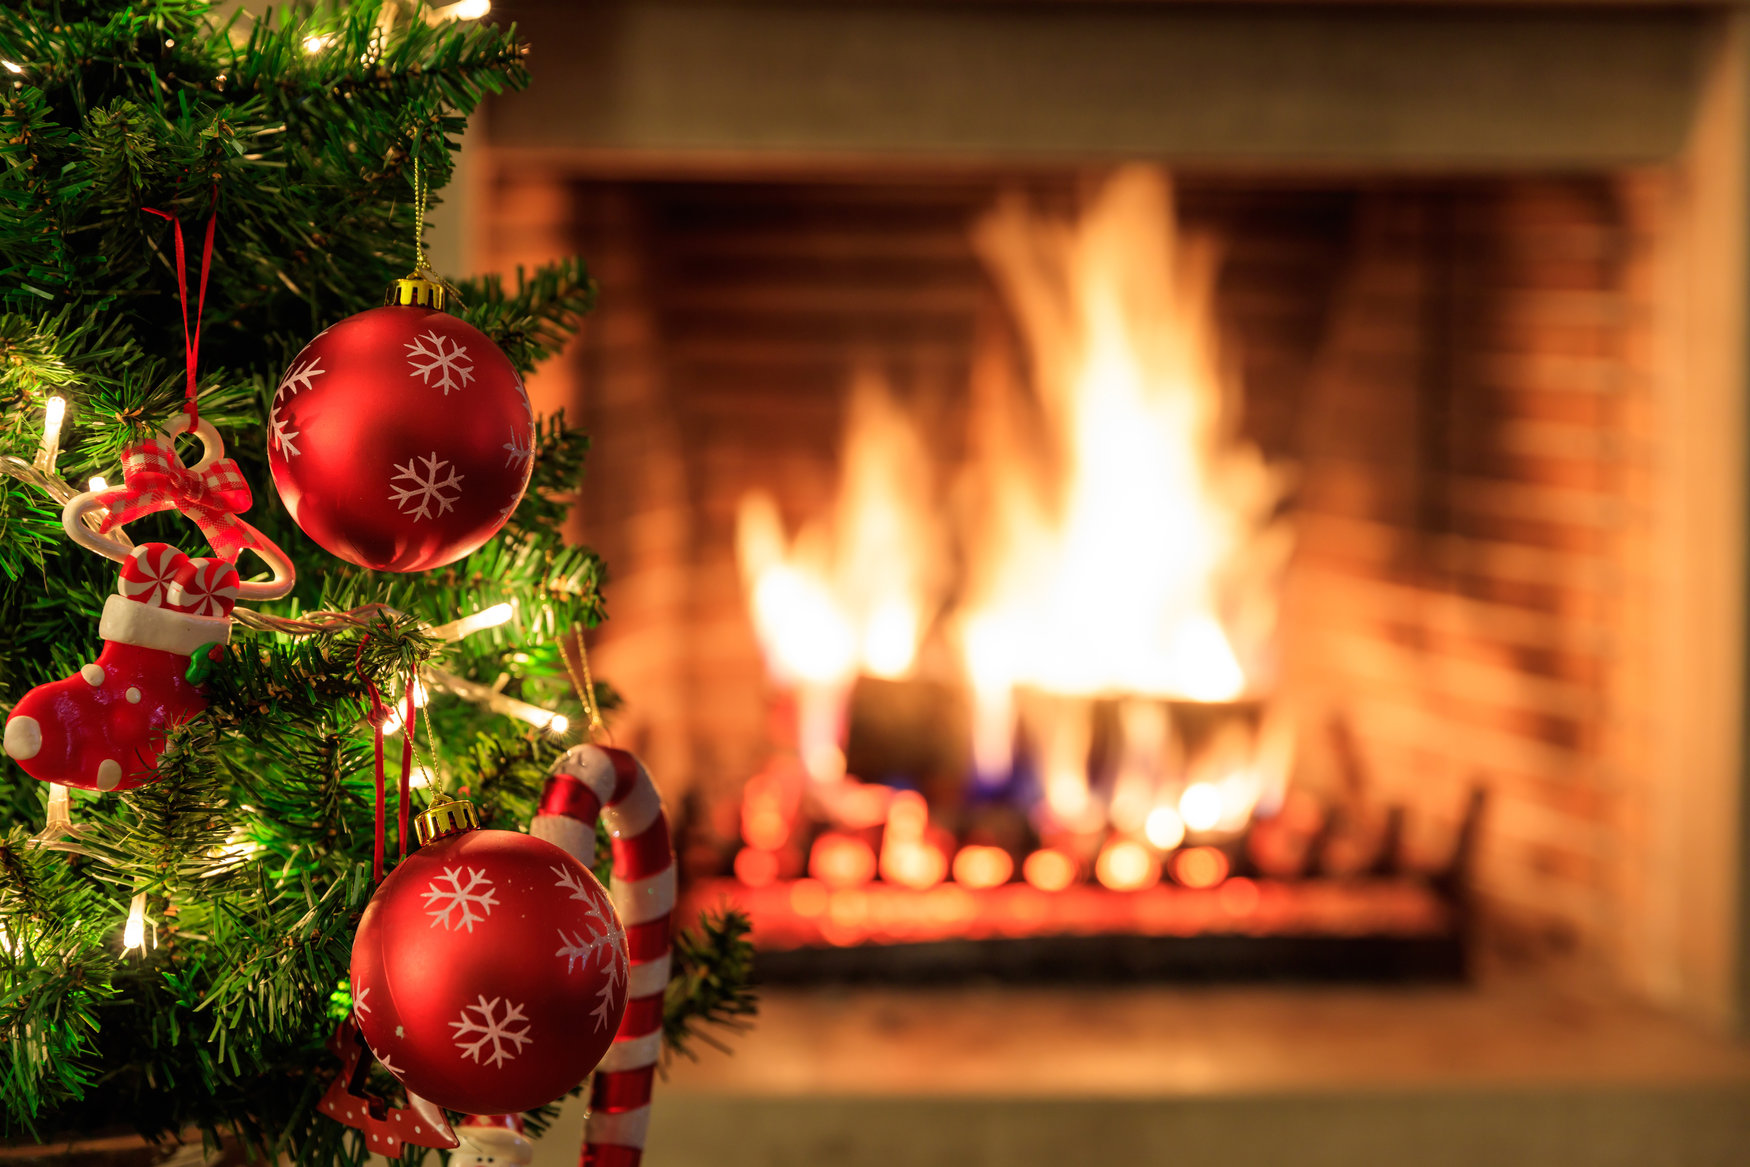 Christmas-Tree-Ornaments-Fireplace